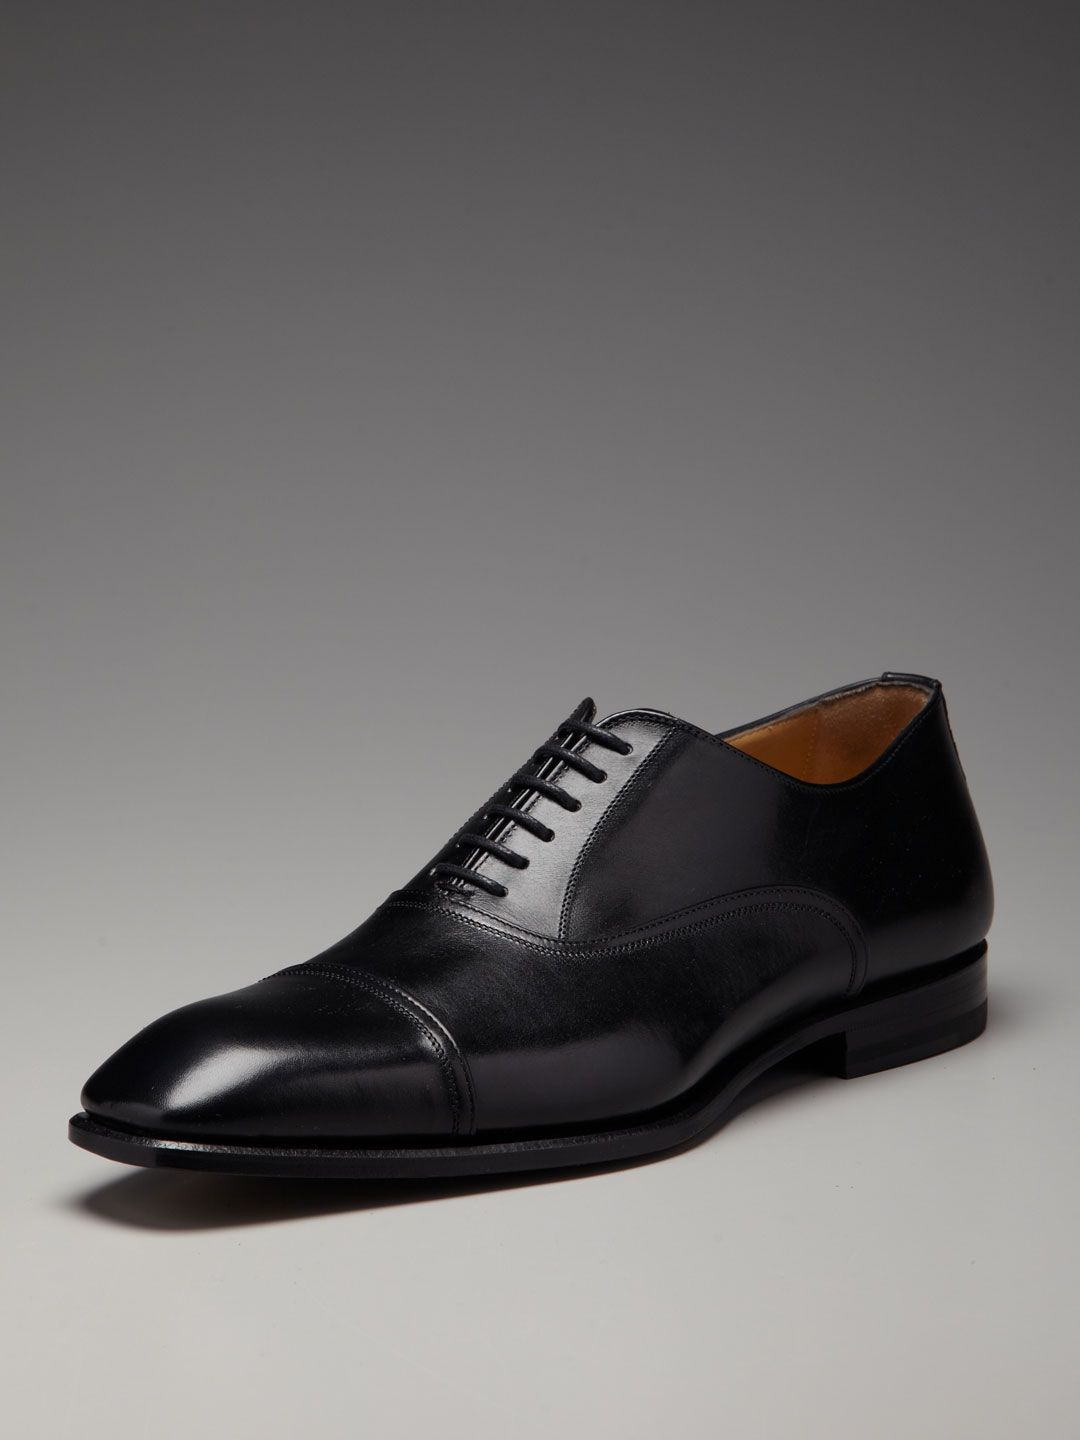 Leather Cap Toe Oxfords by Antonio Maurizi at Gilt